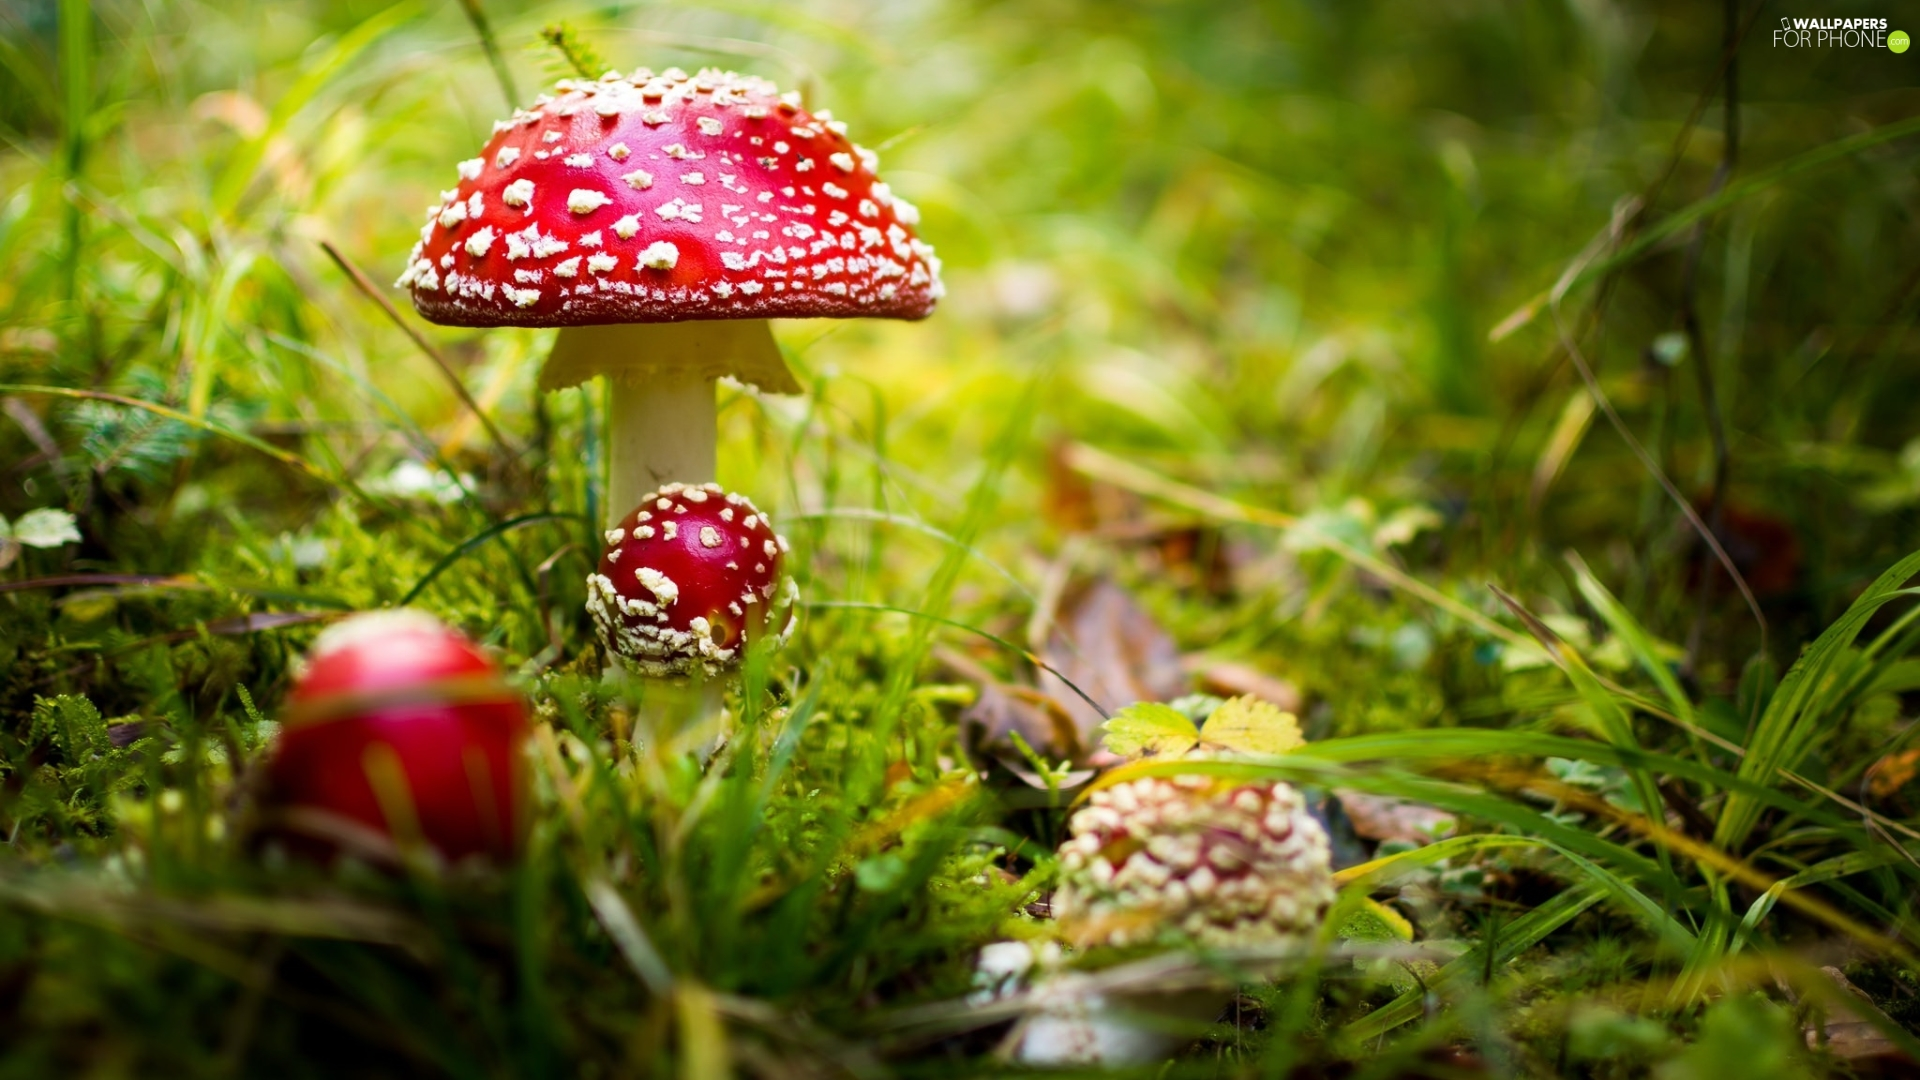 Moss, mushrooms, fuzzy, background, grass, toadstools